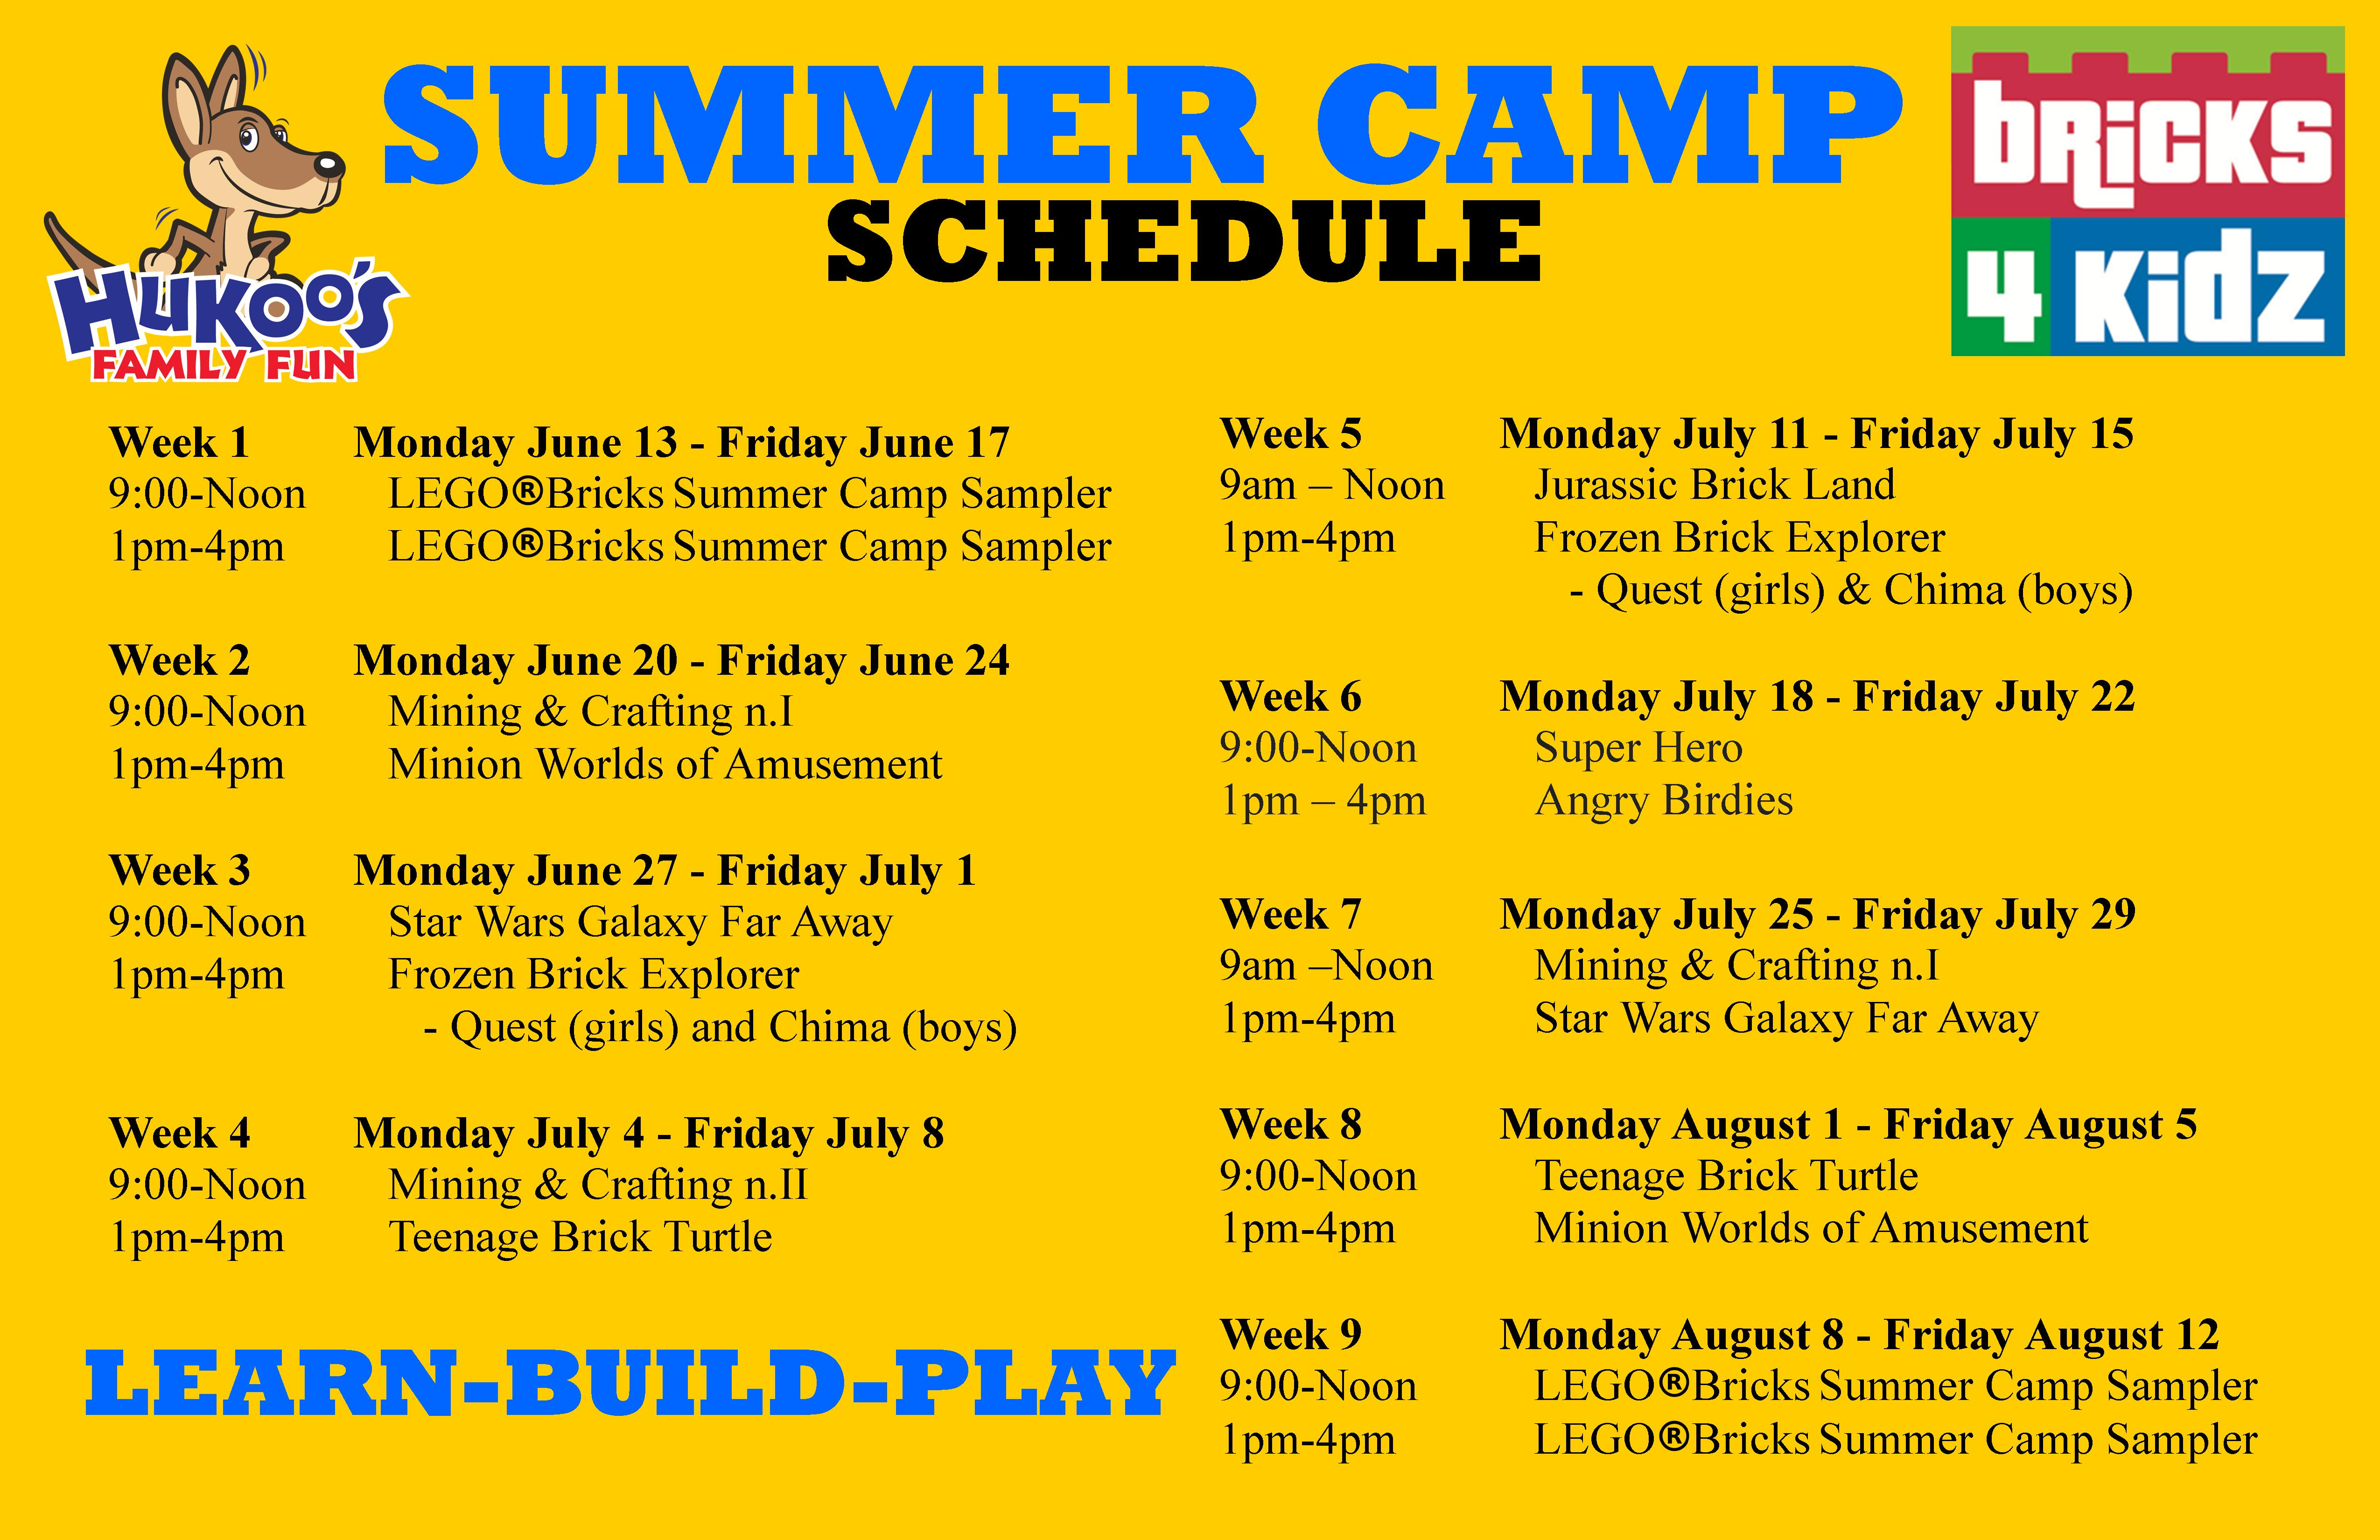 Overall Summer Camp Themes